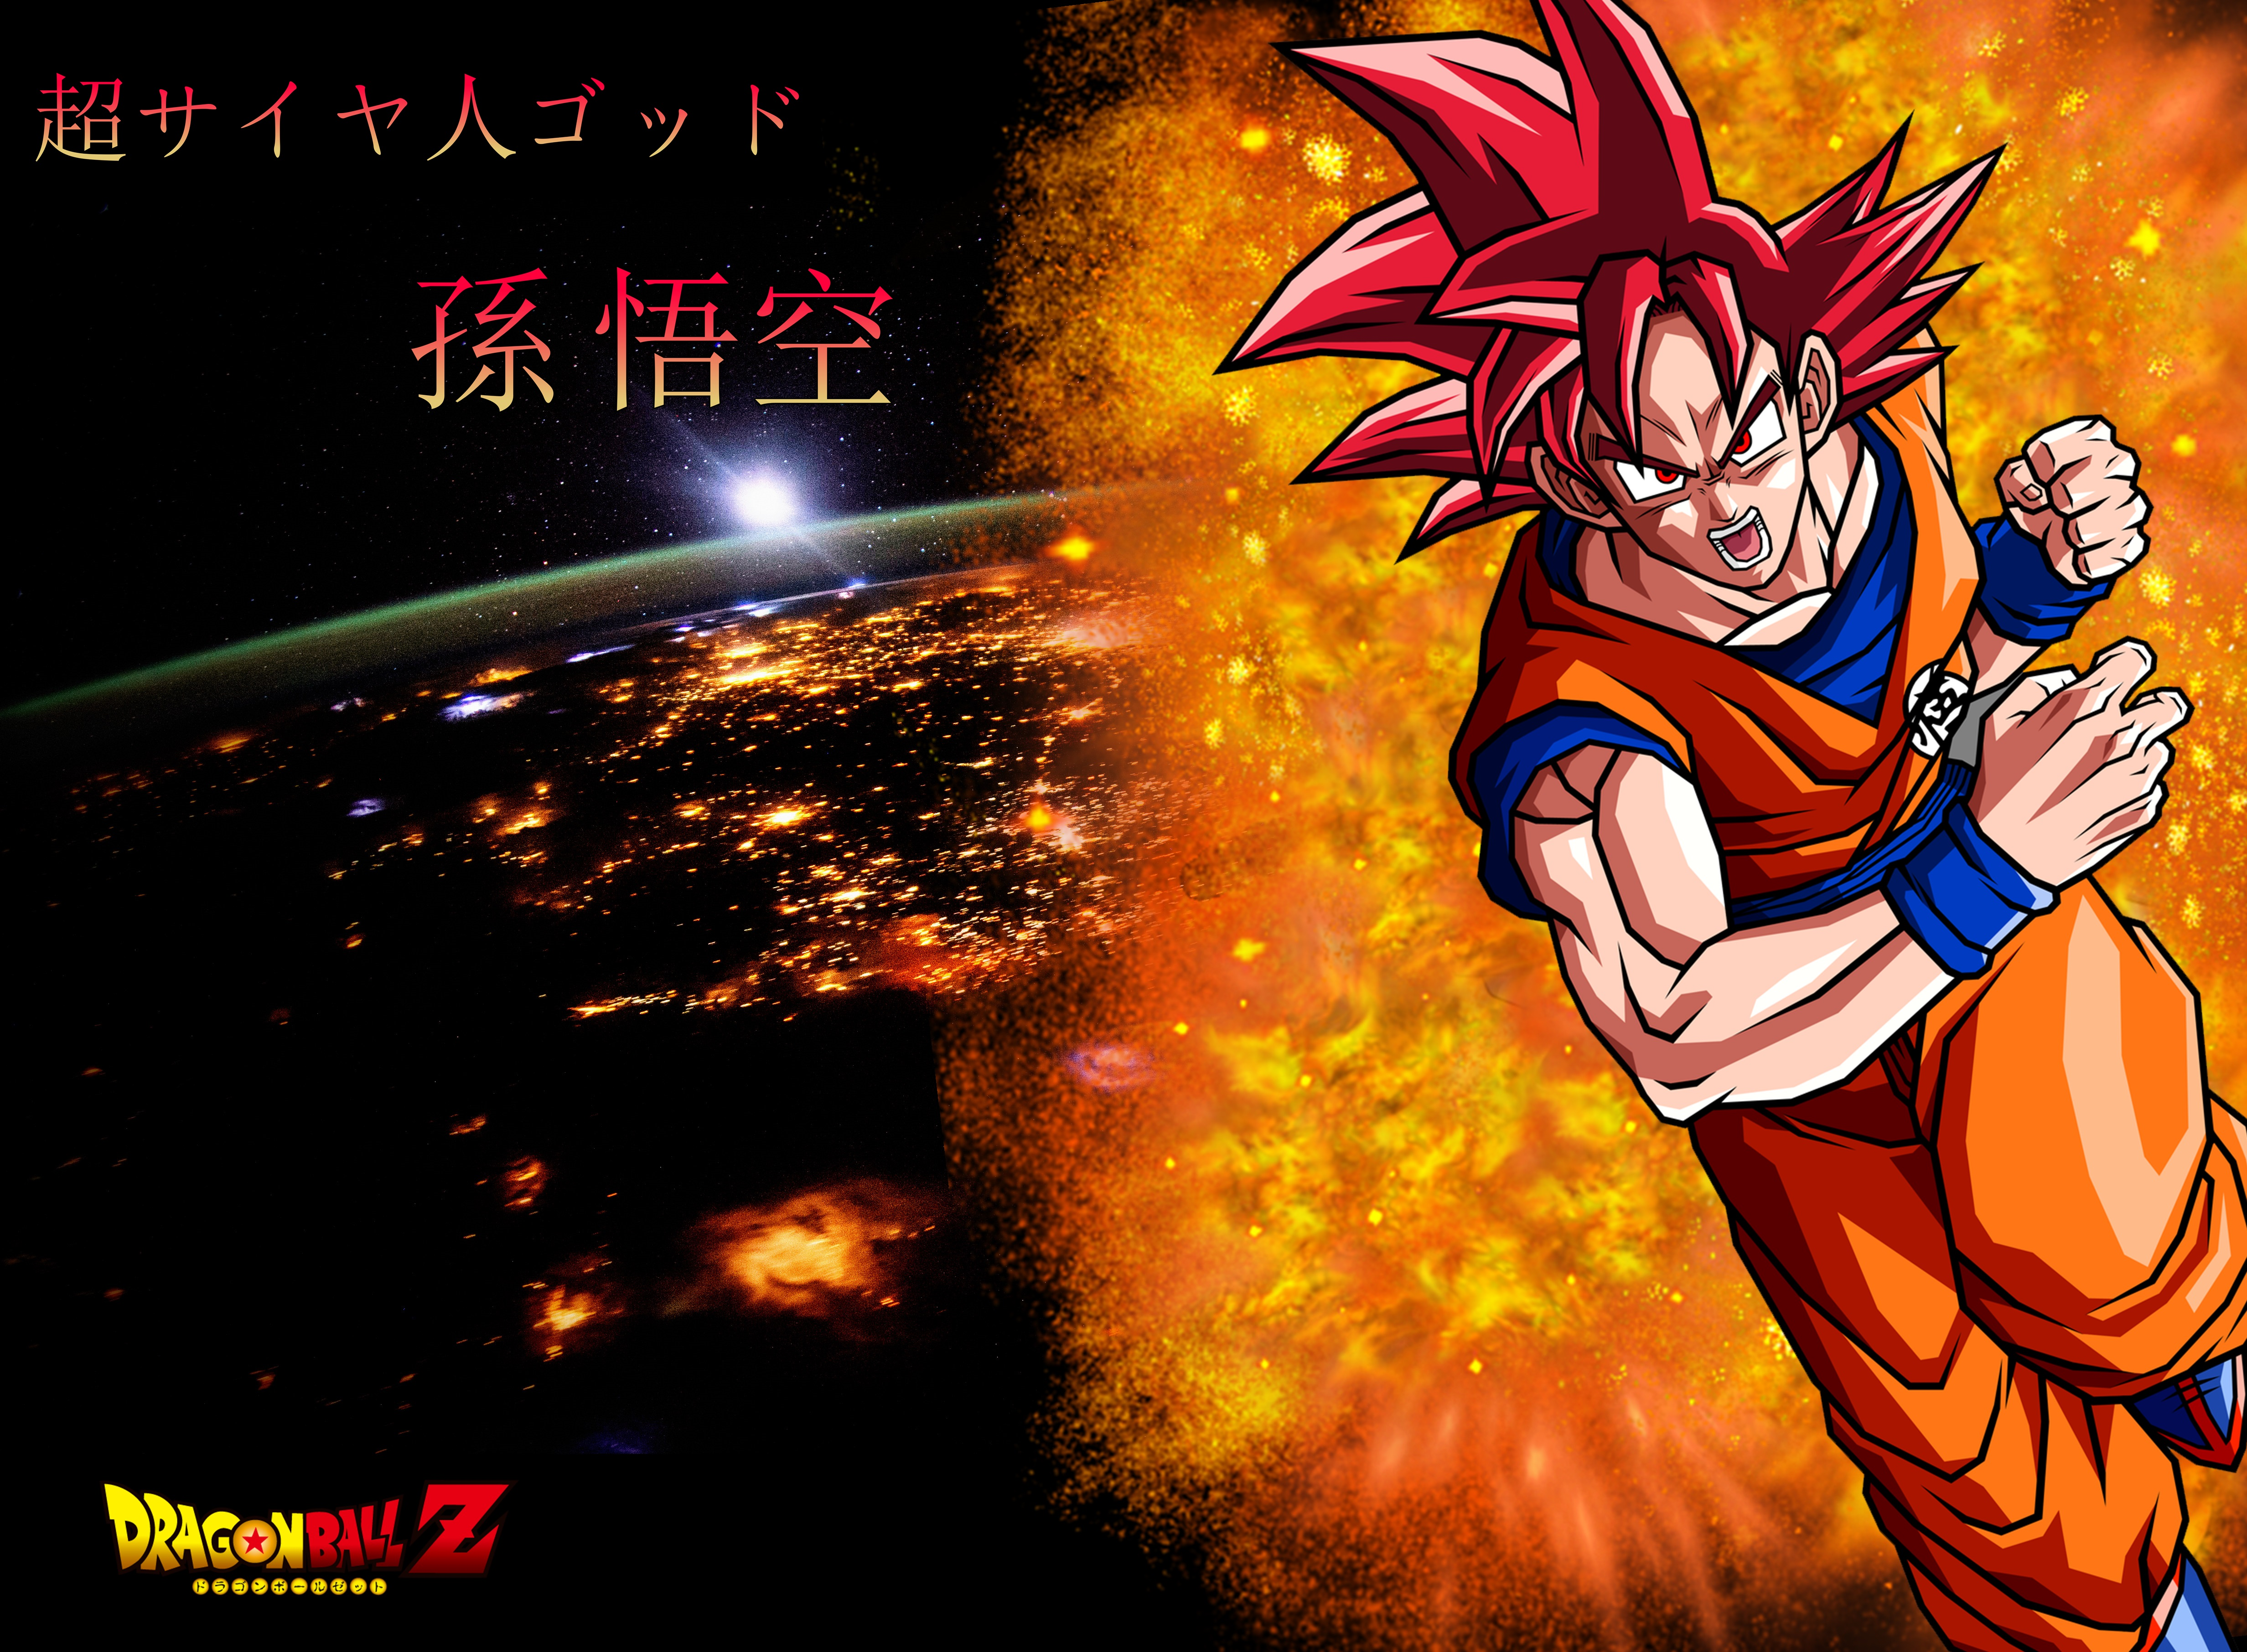 Dragon Ball: Z - Super Saiyan God - 4K Wallpaper by ...